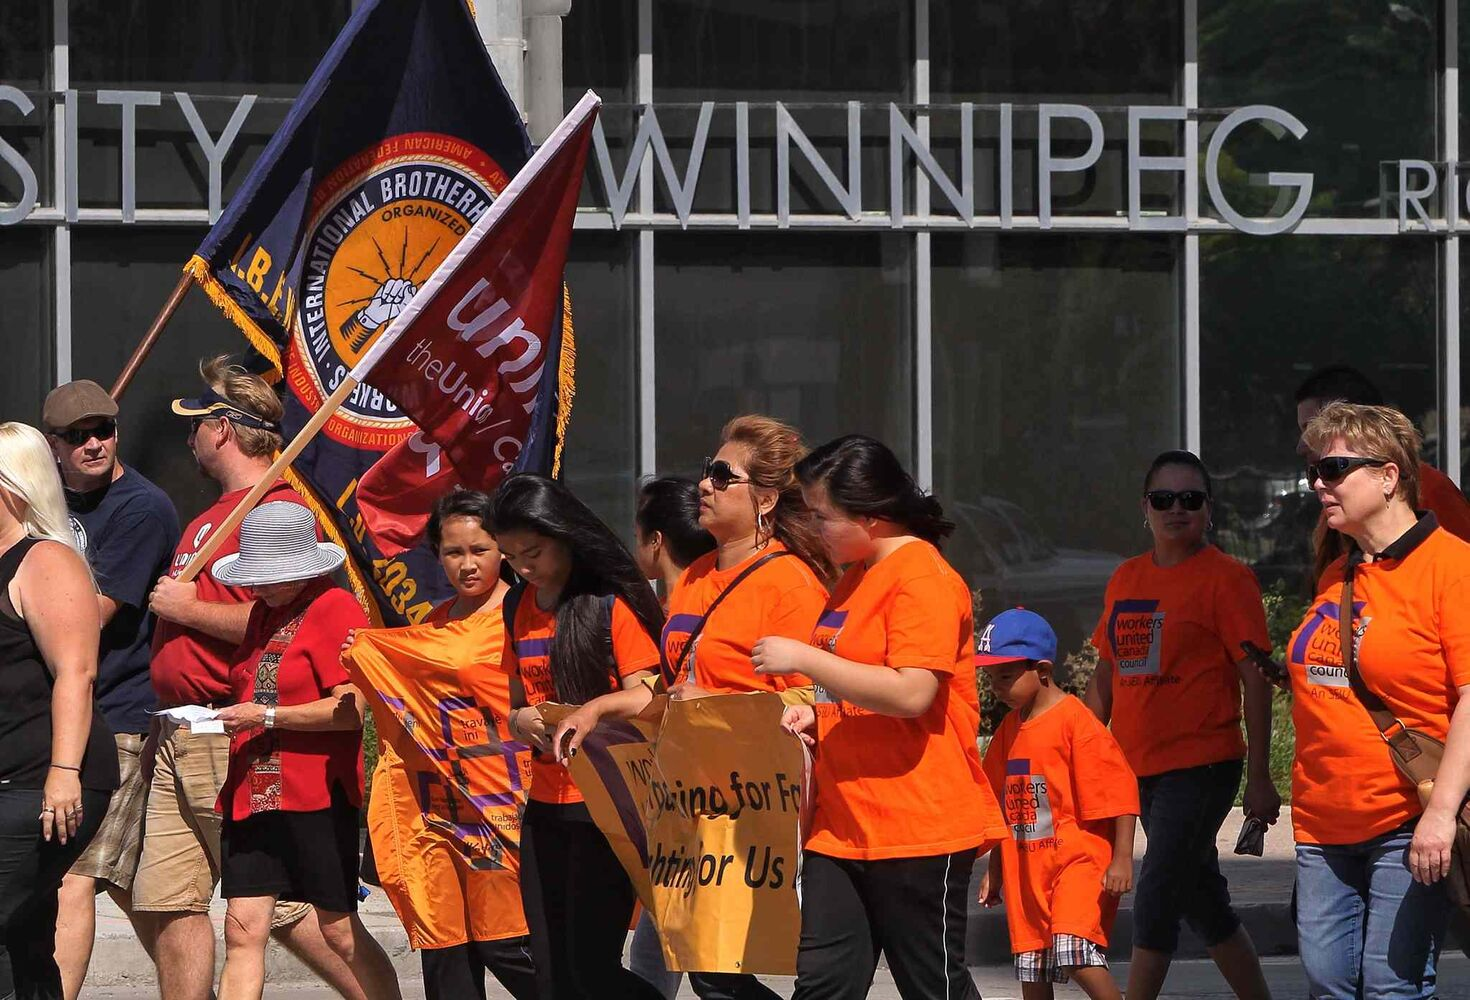 Union members walk along Memorial Boulevard and Portage Avenue towards Vimy Ridge Park during the annual Labour Day March.  (Mike Deal / Winnipeg Free Press)